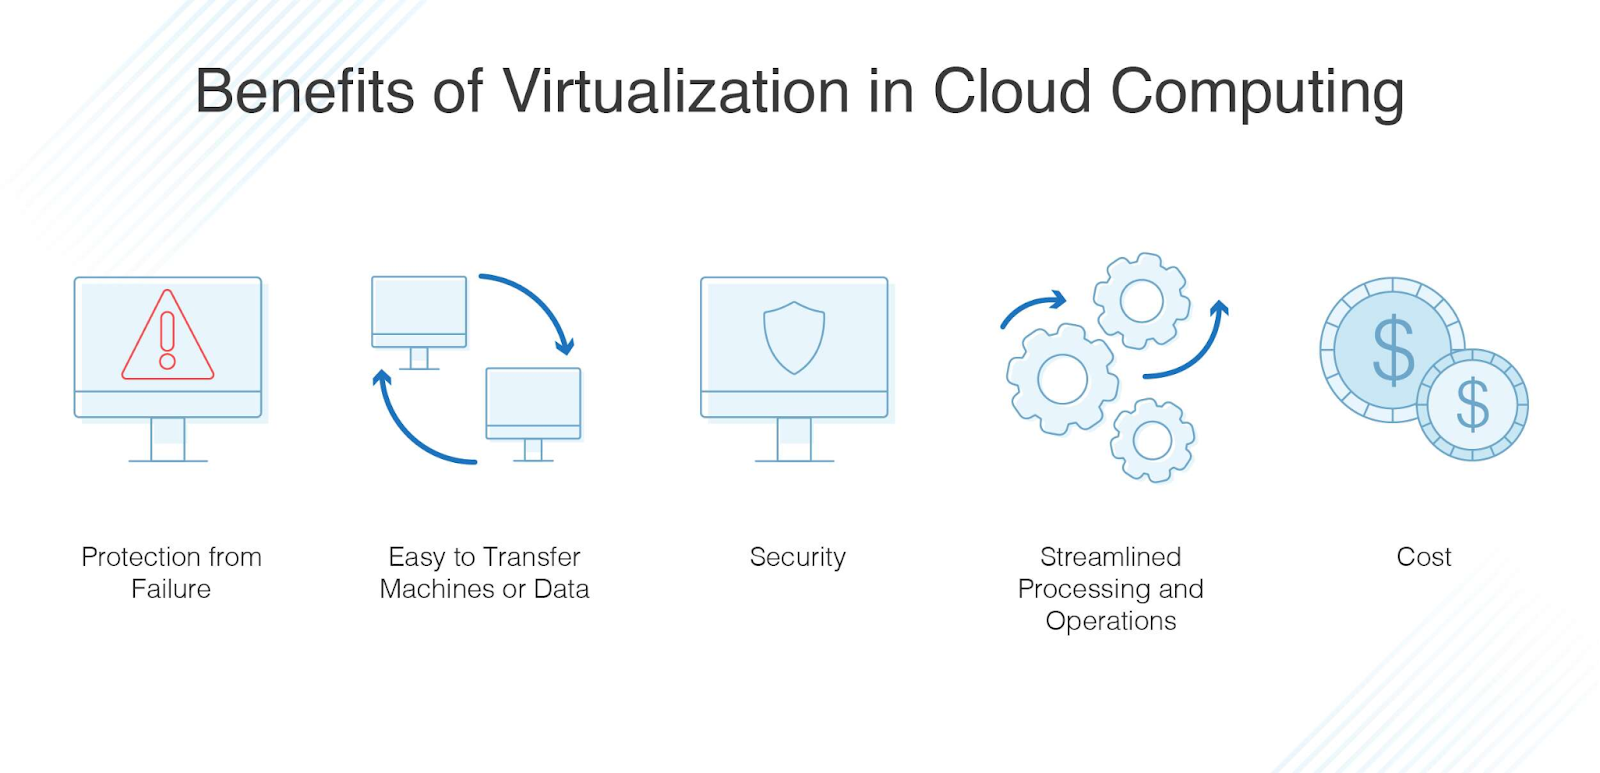 Types of Virtualizations in Cloud Computing